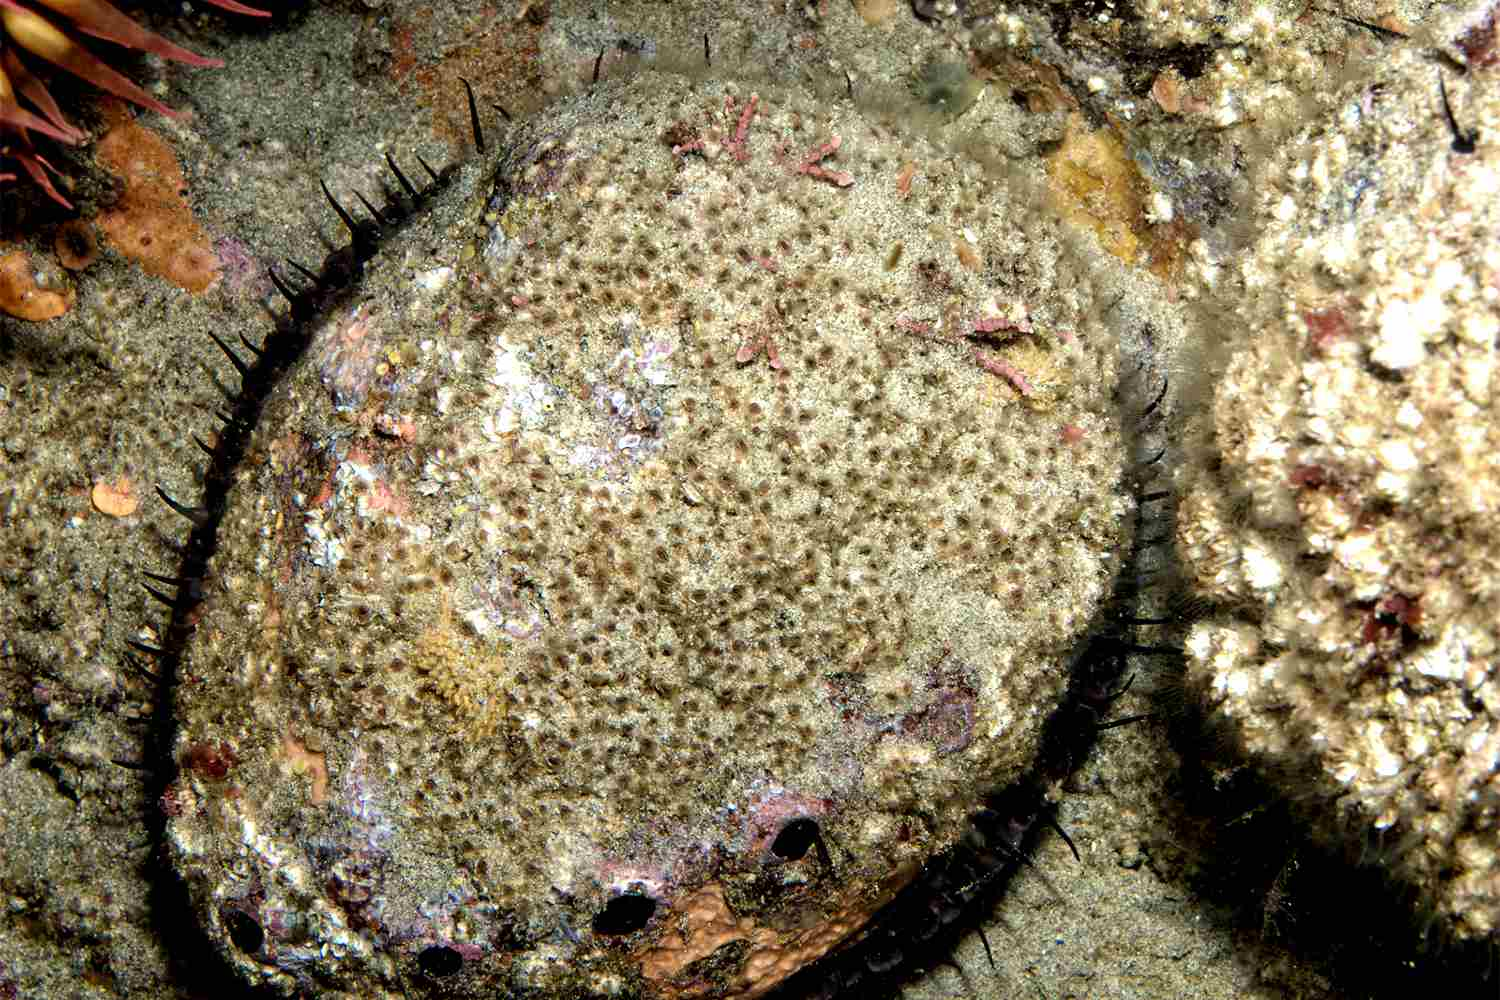 California Red Abalone: Where and How to Find It